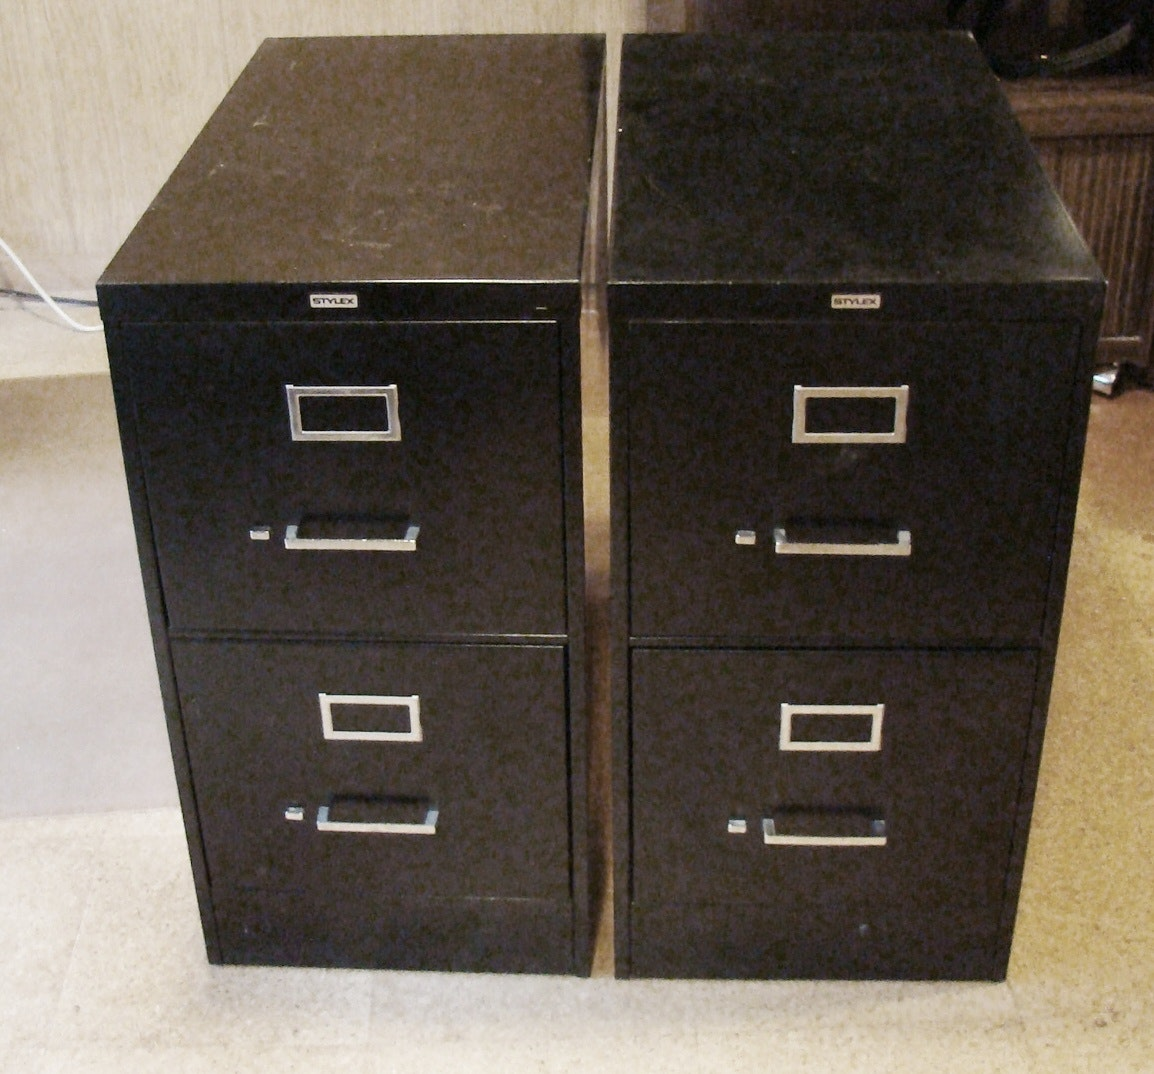 Pair Of Stylex, Black 2 Drawer File Cabinets.